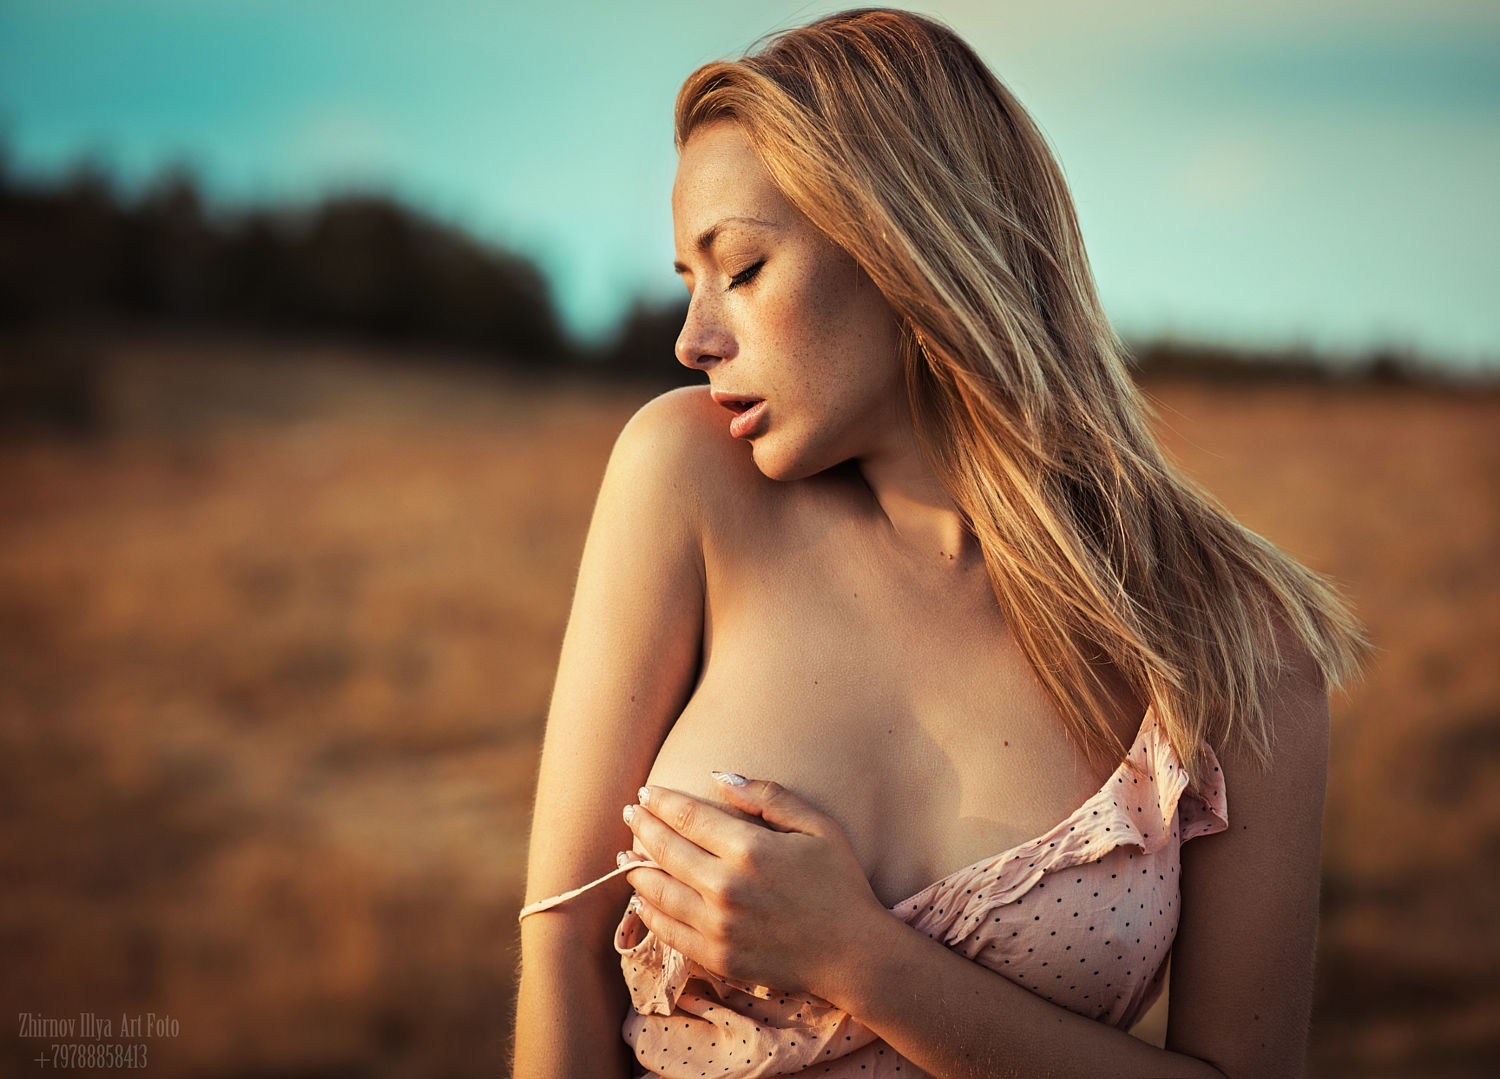 People 1500x1079 women Olga Kobzar women outdoors hand bra hand on boob closed eyes strategic covering Ilya Zhirnov